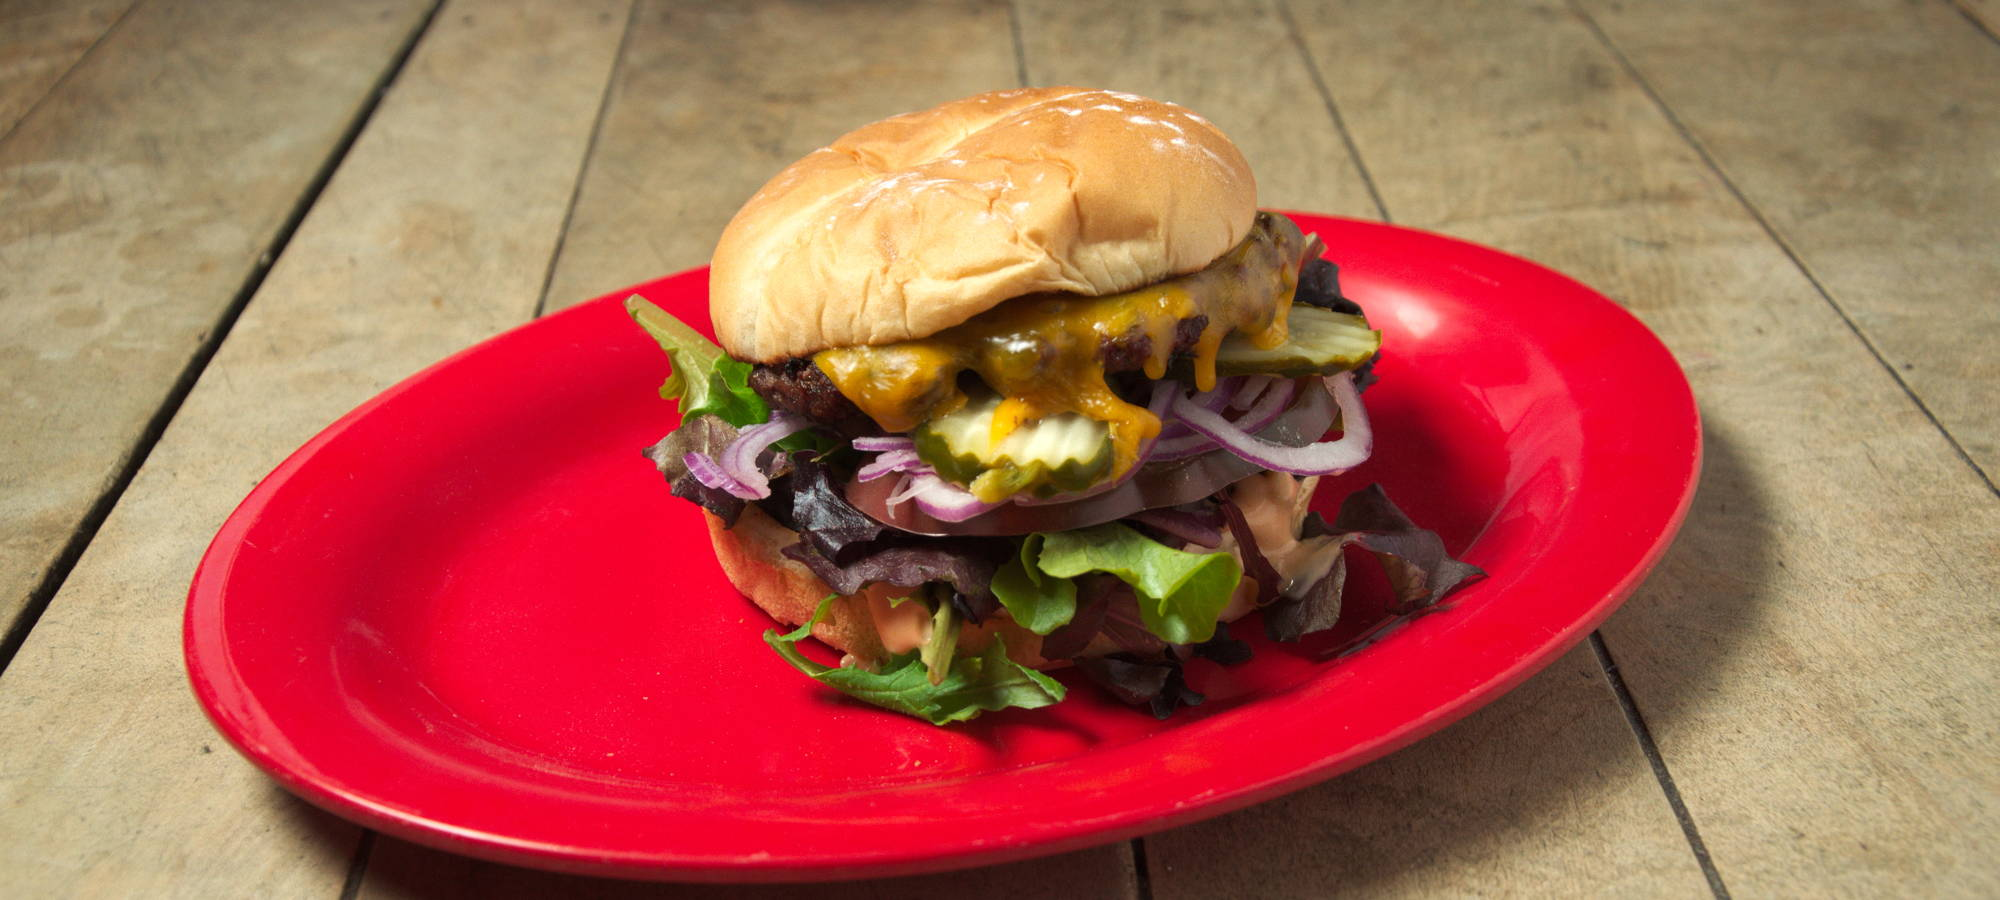 A cheeseburger on a plate set on a wooden tabletop